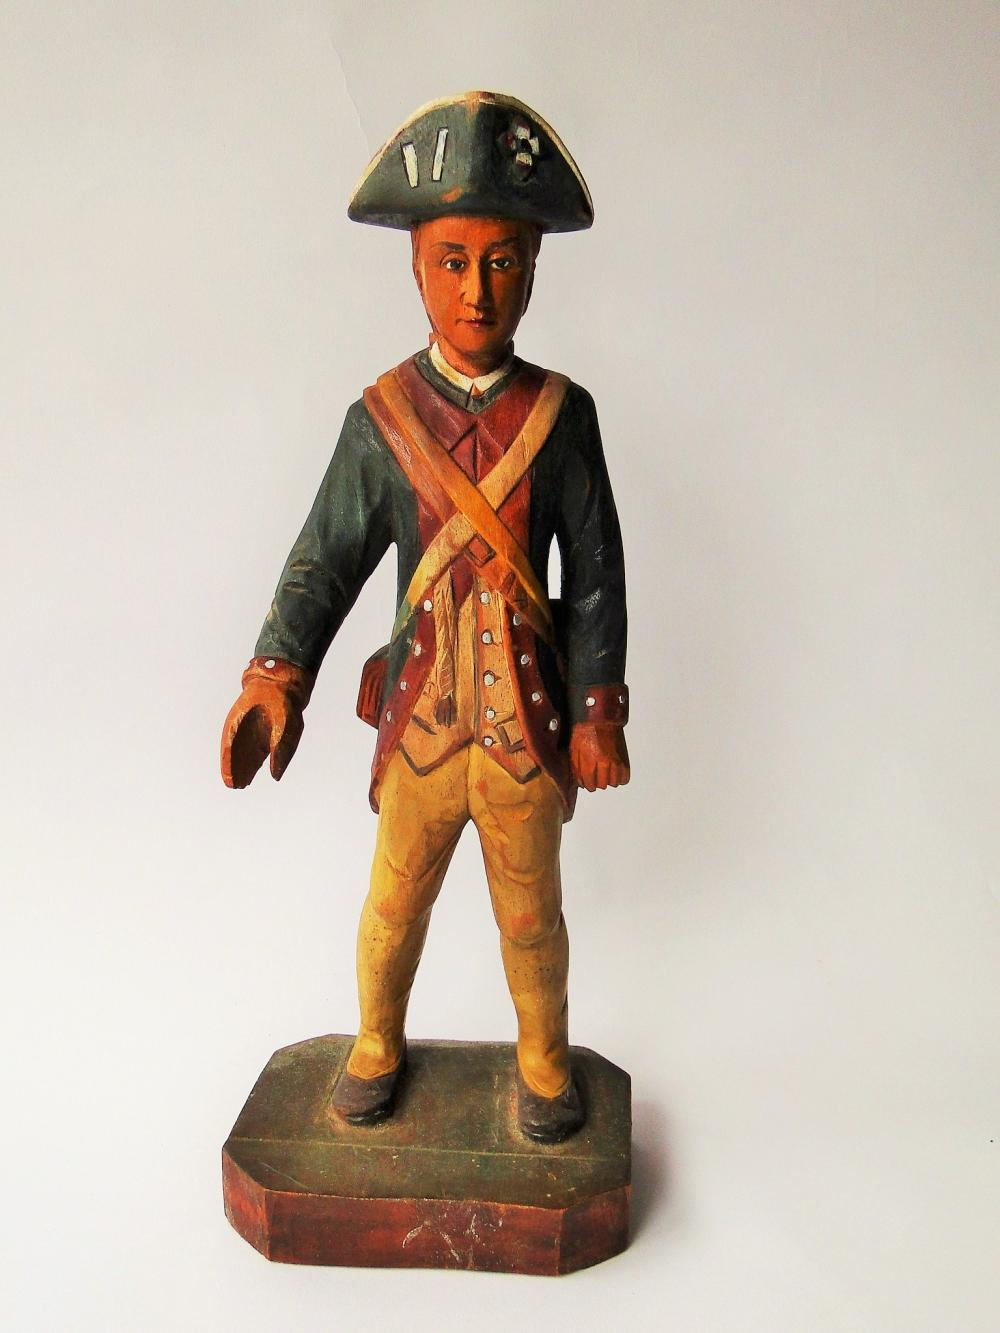 19TH C CARVING OF REVOLUTIONARY SOLDIER